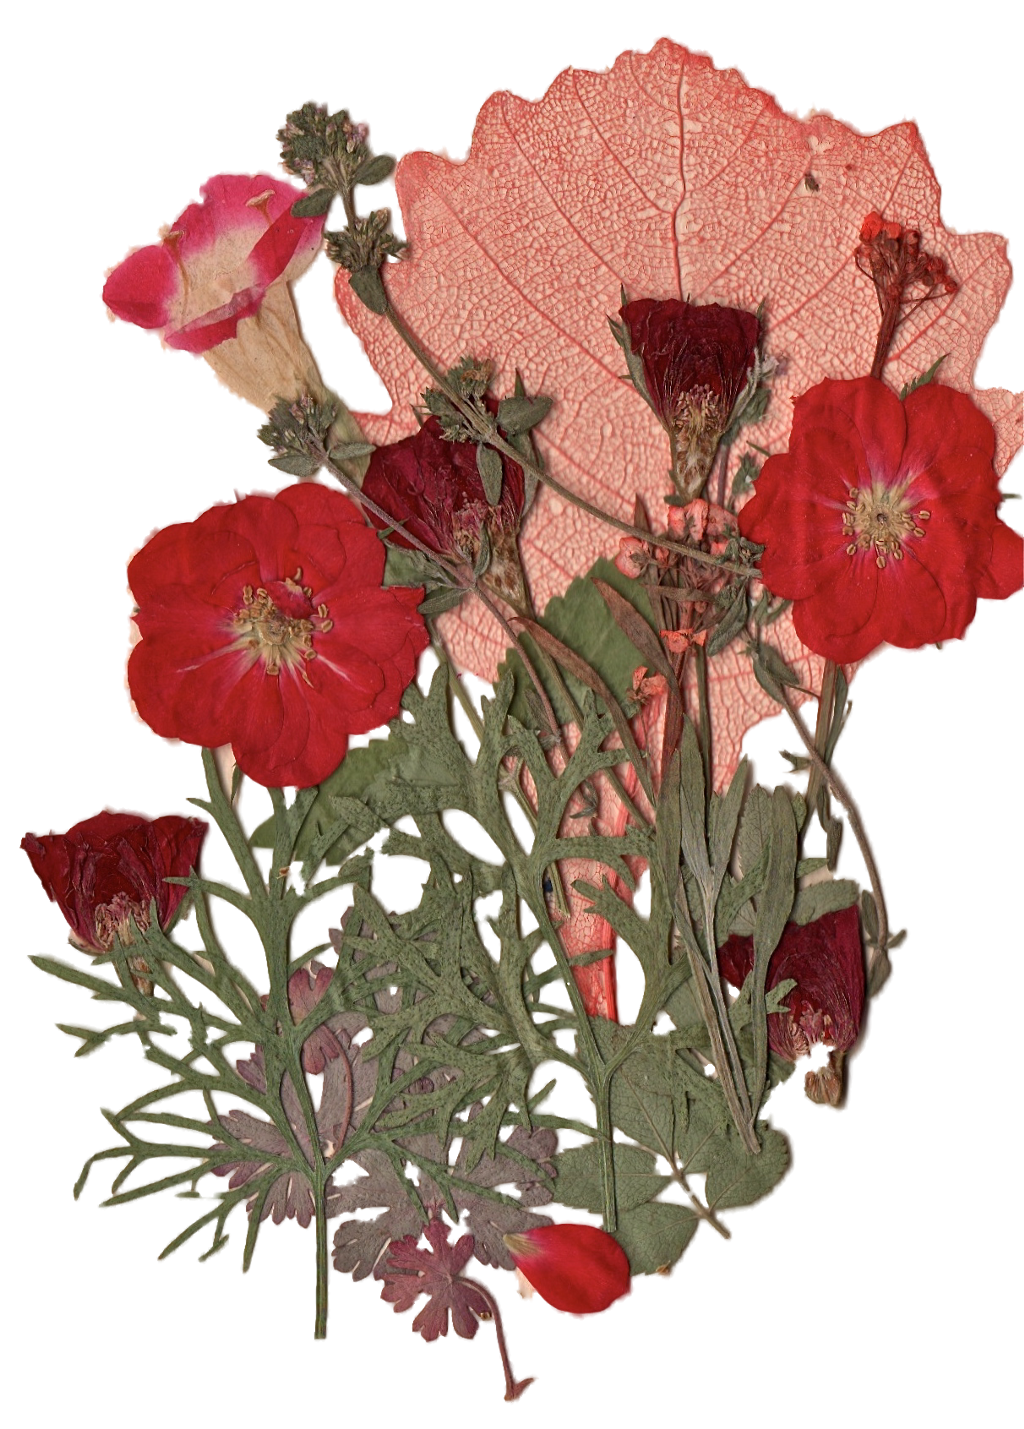 Flowers Bunch Aesthetic Vintage Tumblr Roses Pink Red